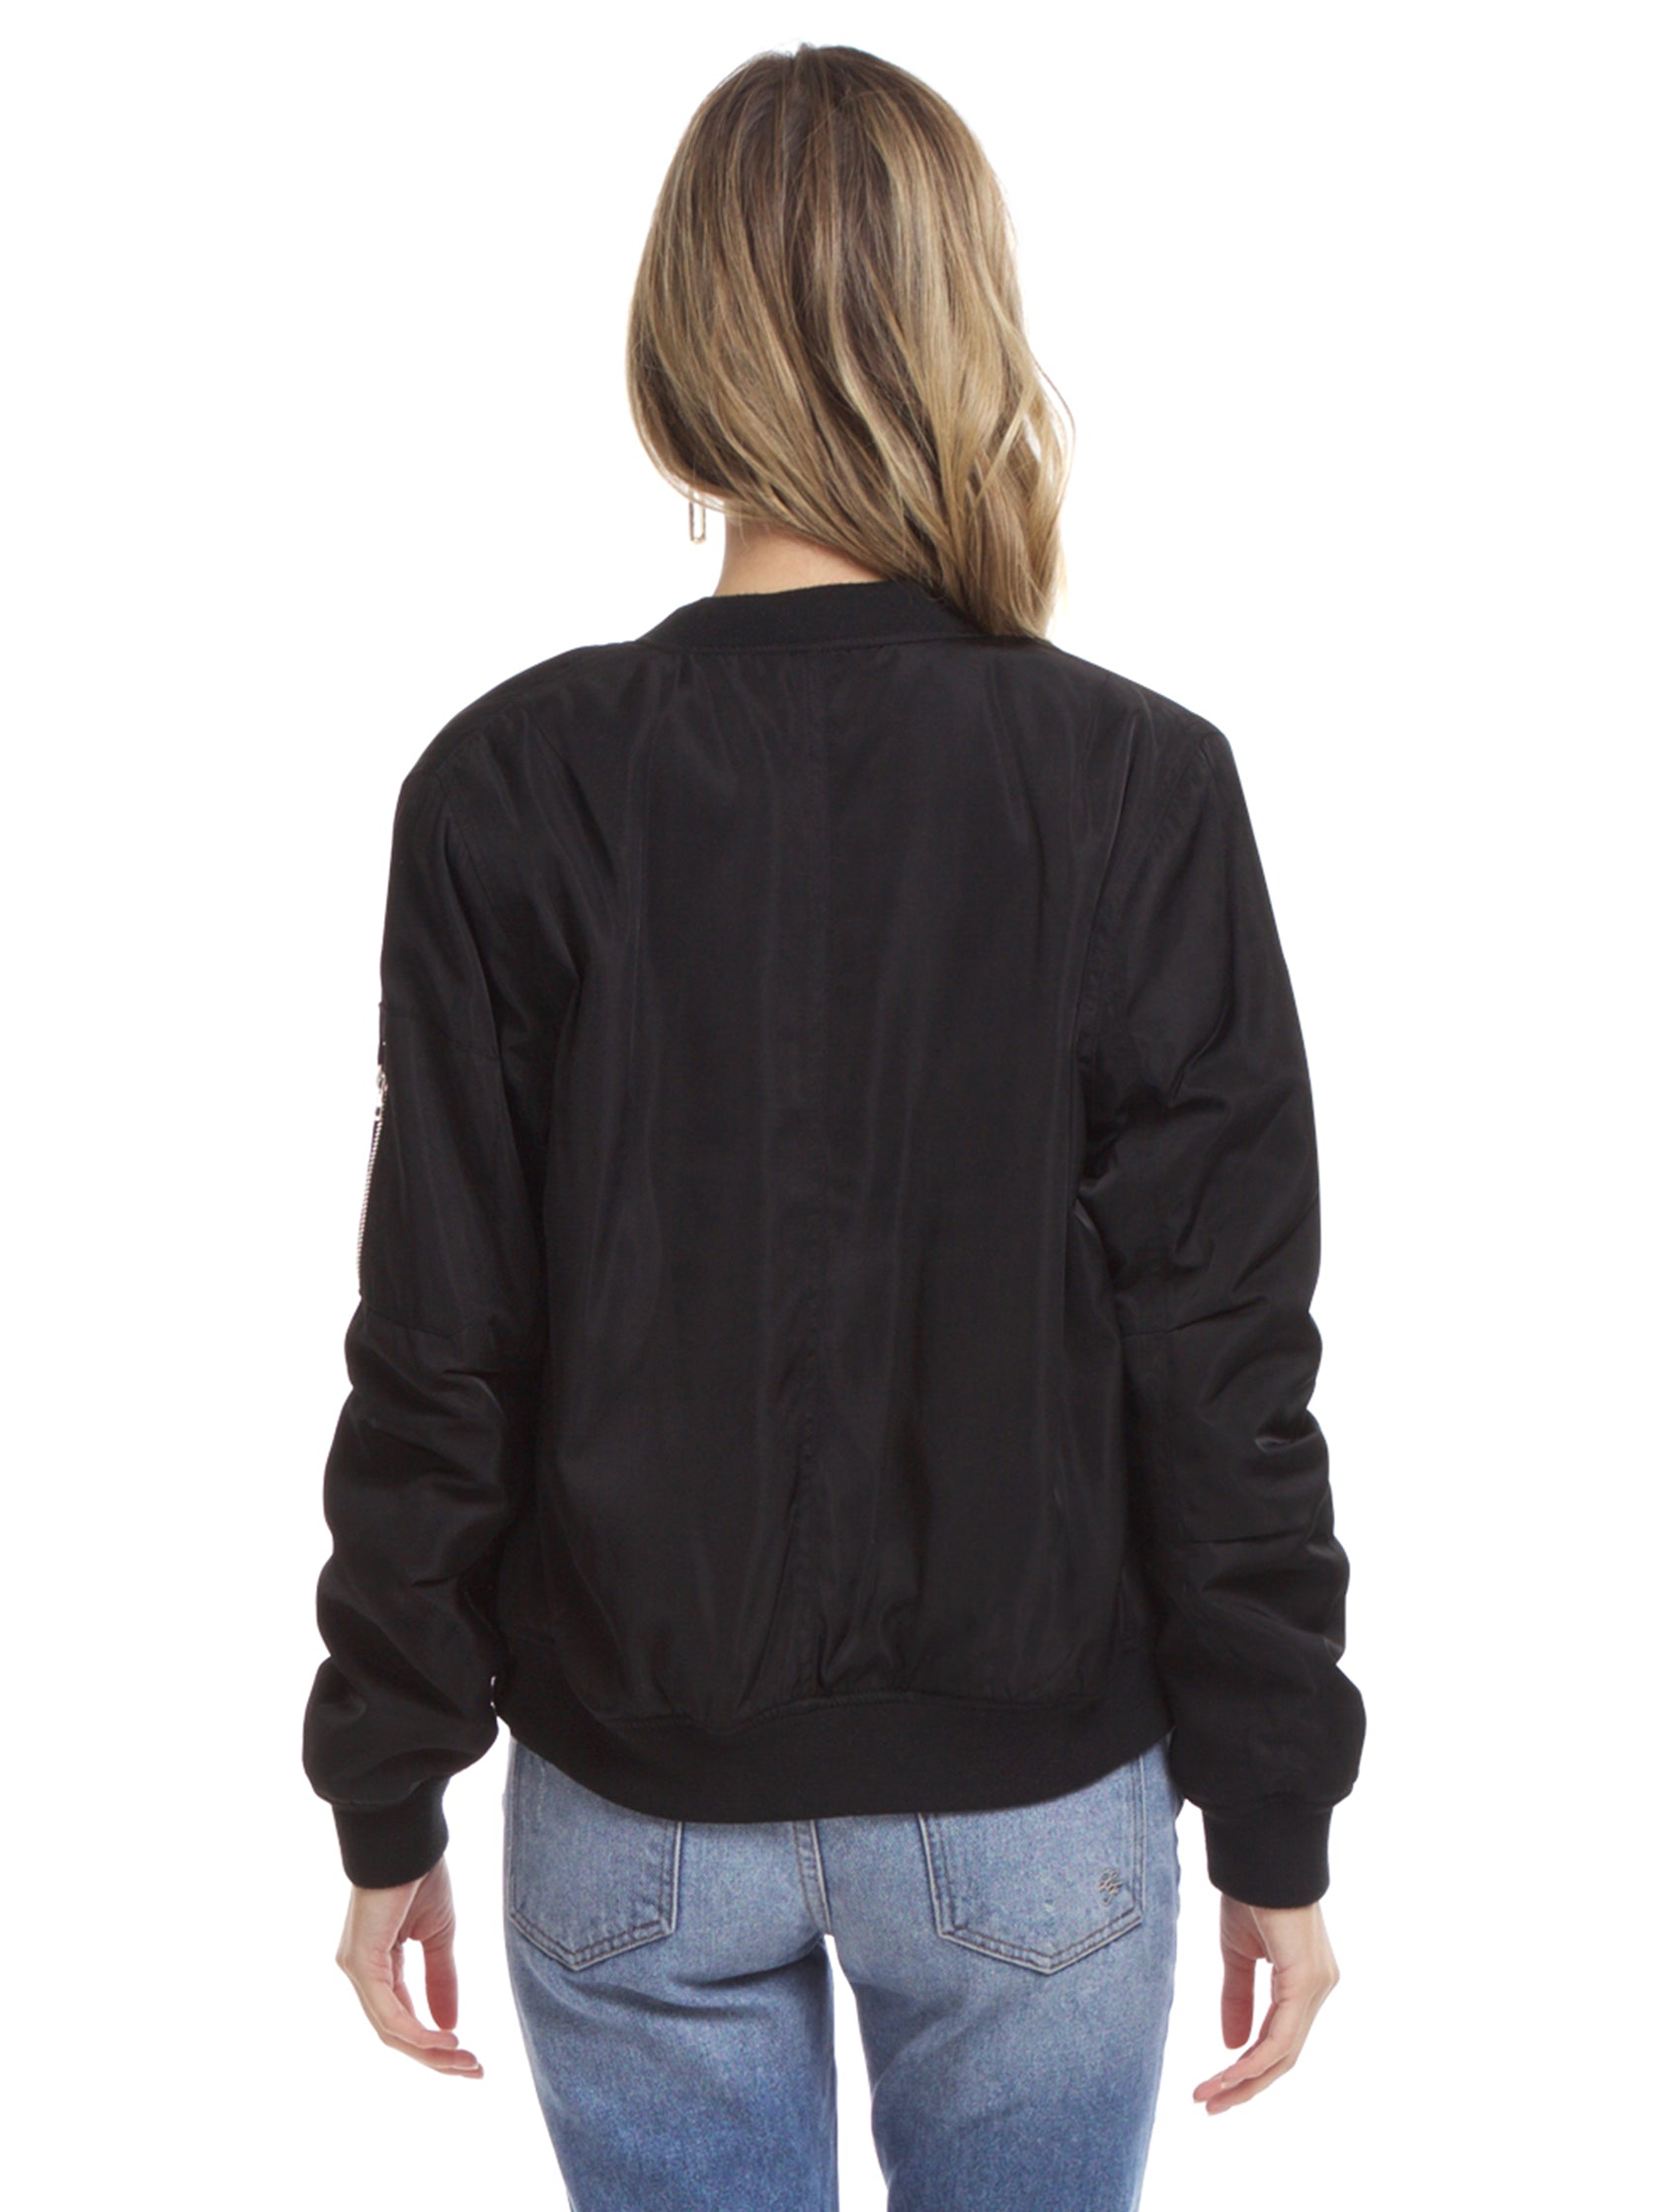 Women outfit in a jacket rental from Lush called Zip Up Bomber Jacket